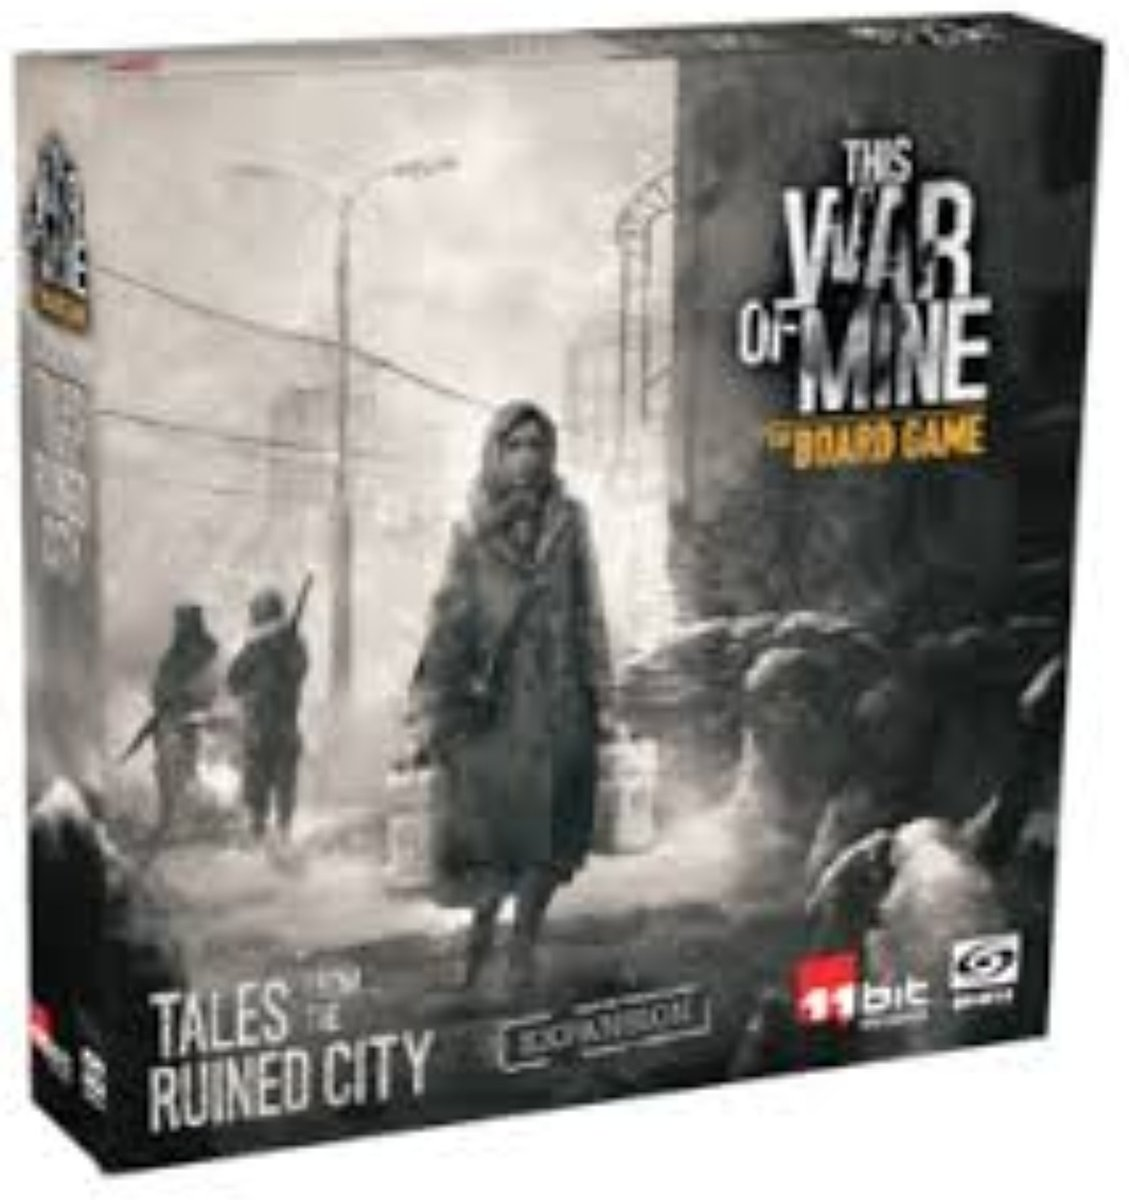 This war of mine  : Tales of the ruined city expansion